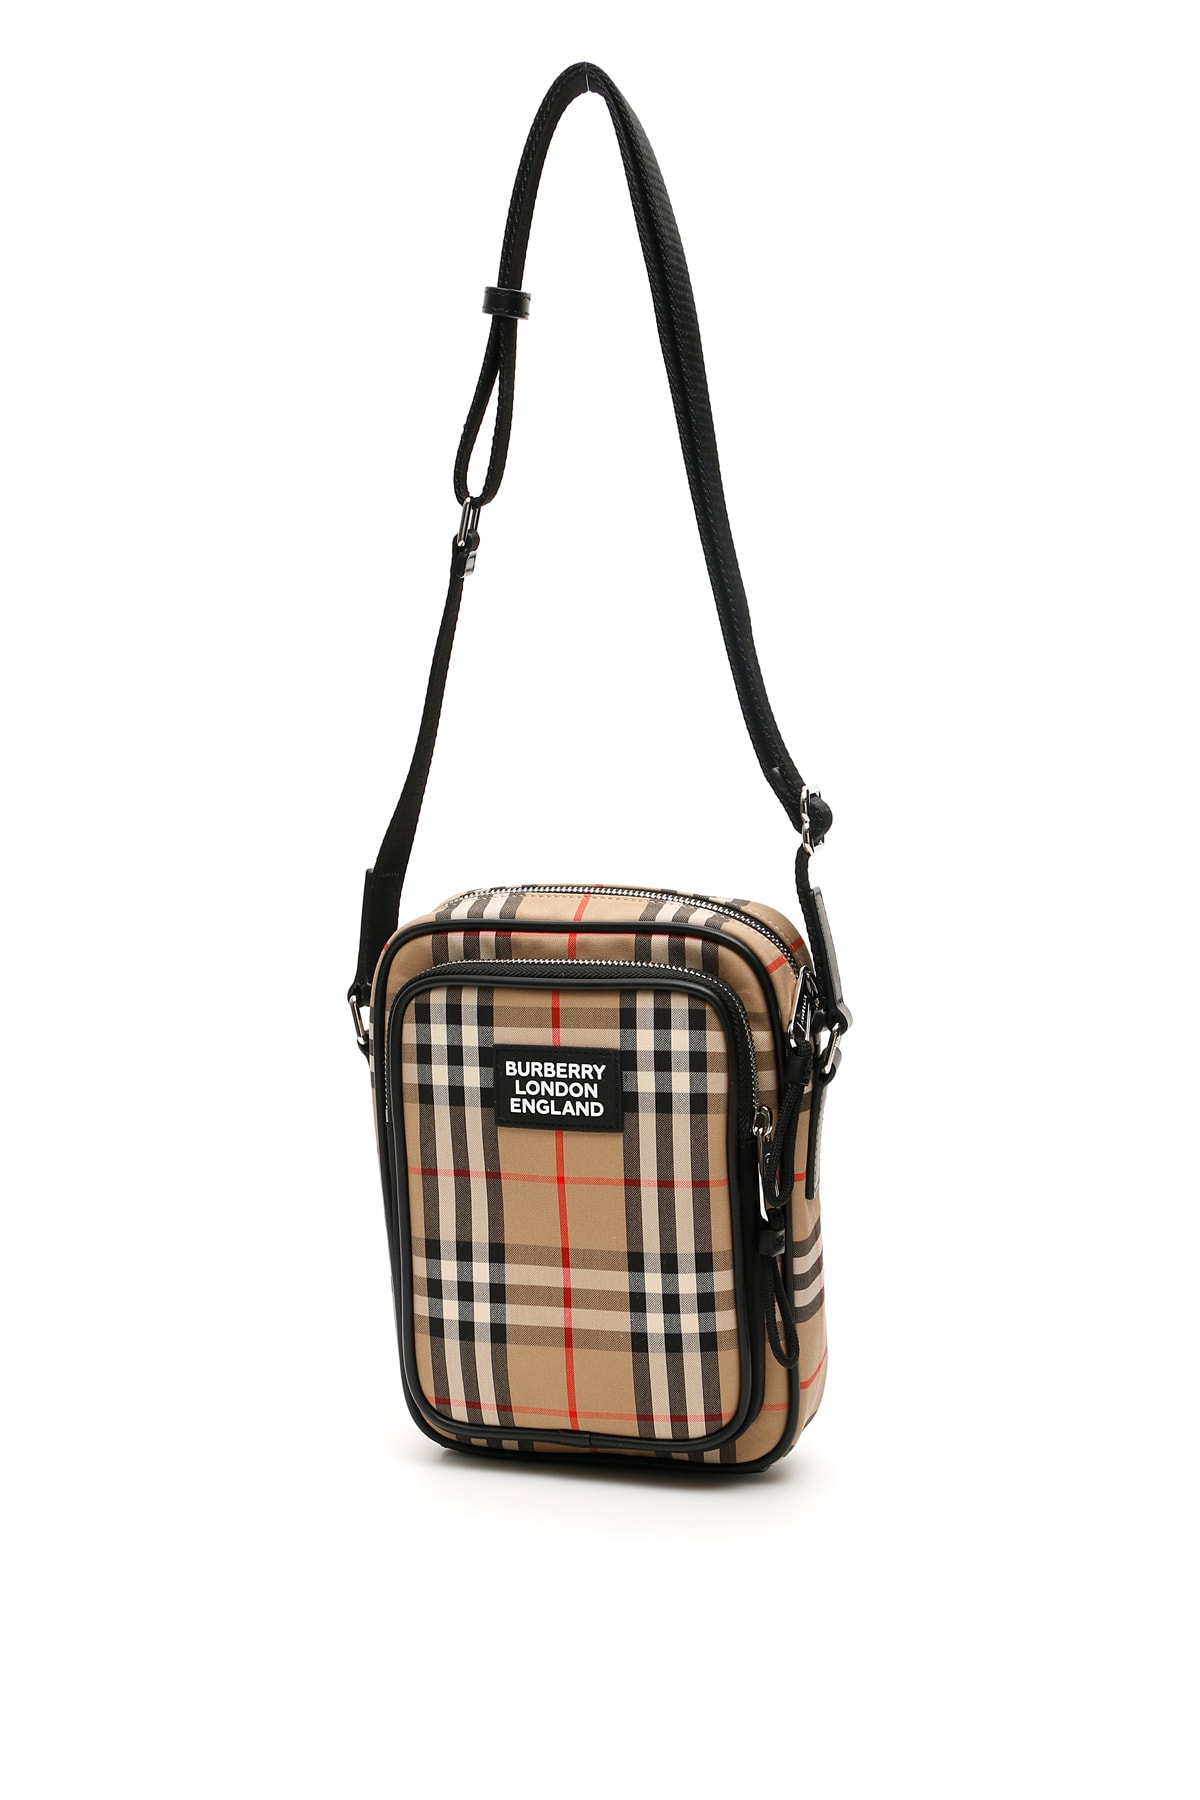 Burberry CHECK MEDIUM FREDDIE MESSENGER BAG